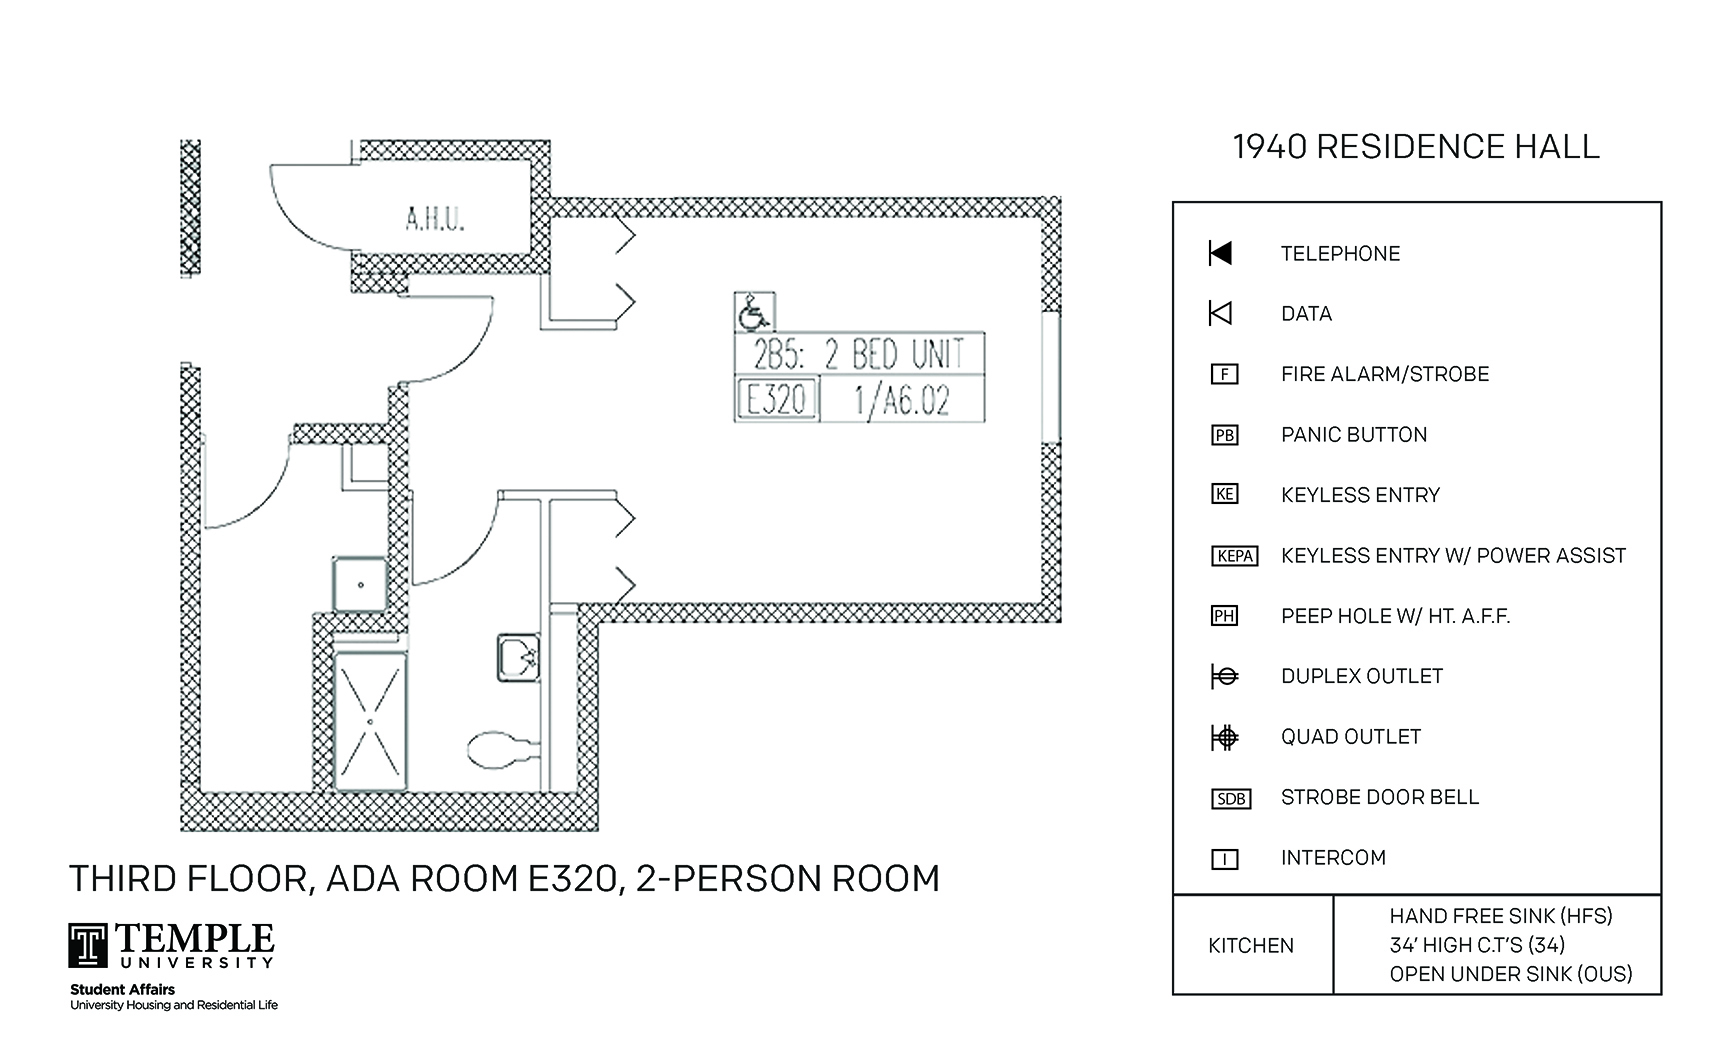 Accessible Room Diagrams: 2 person, 1 bedroom Suite - E320